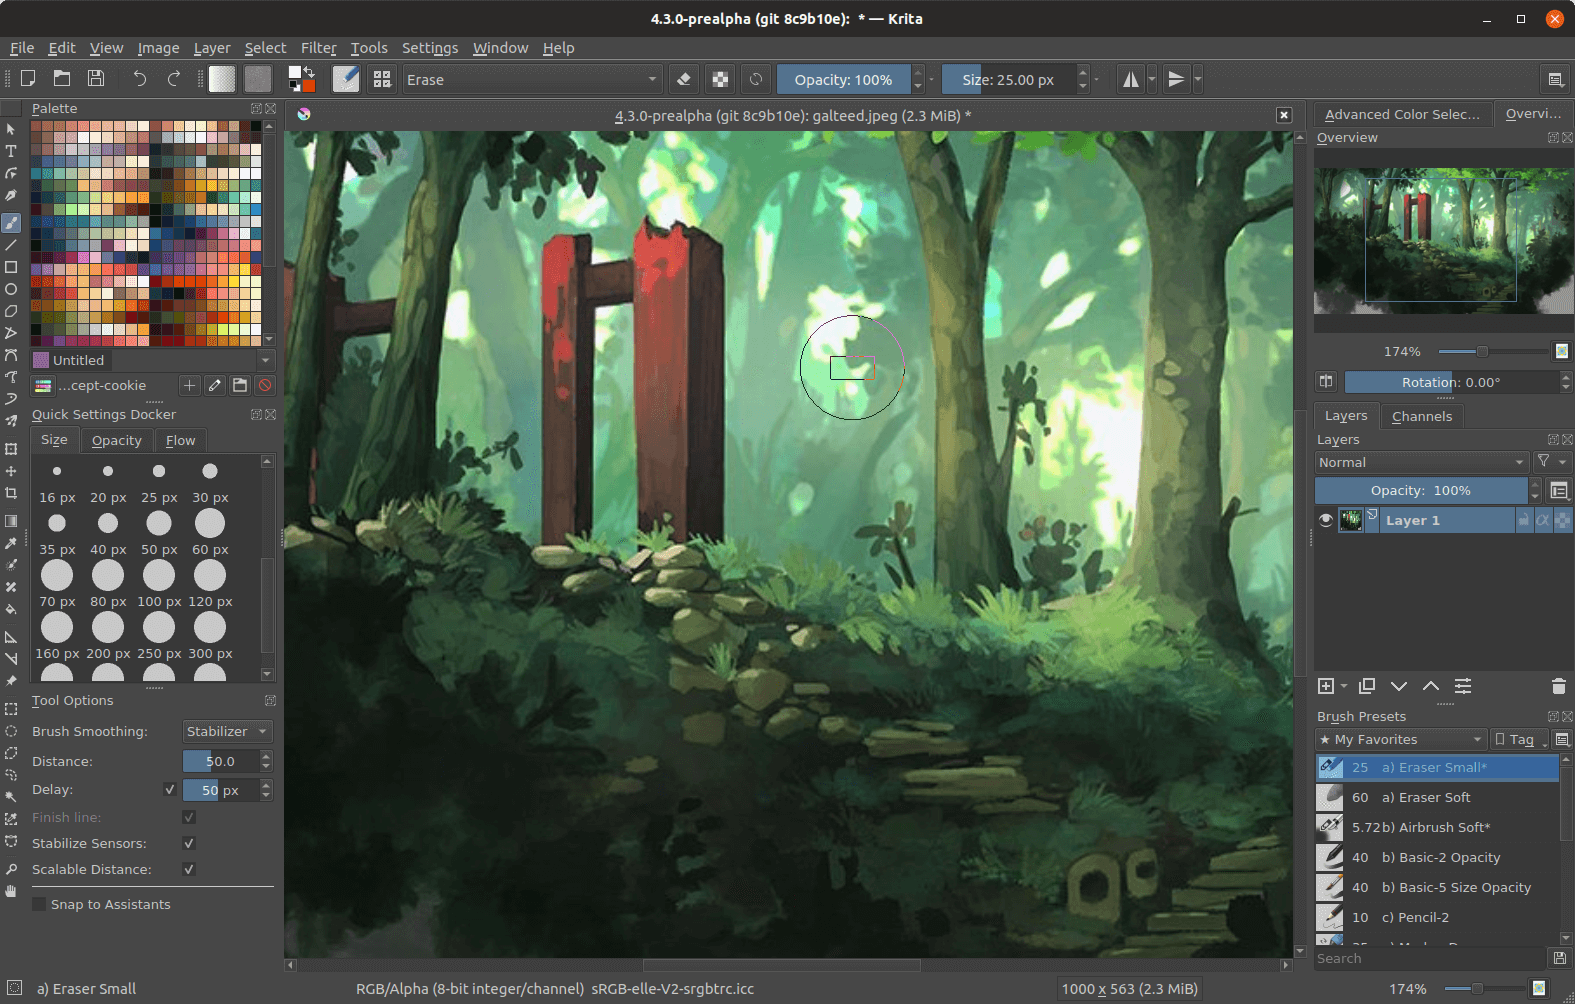 Krita screenshot